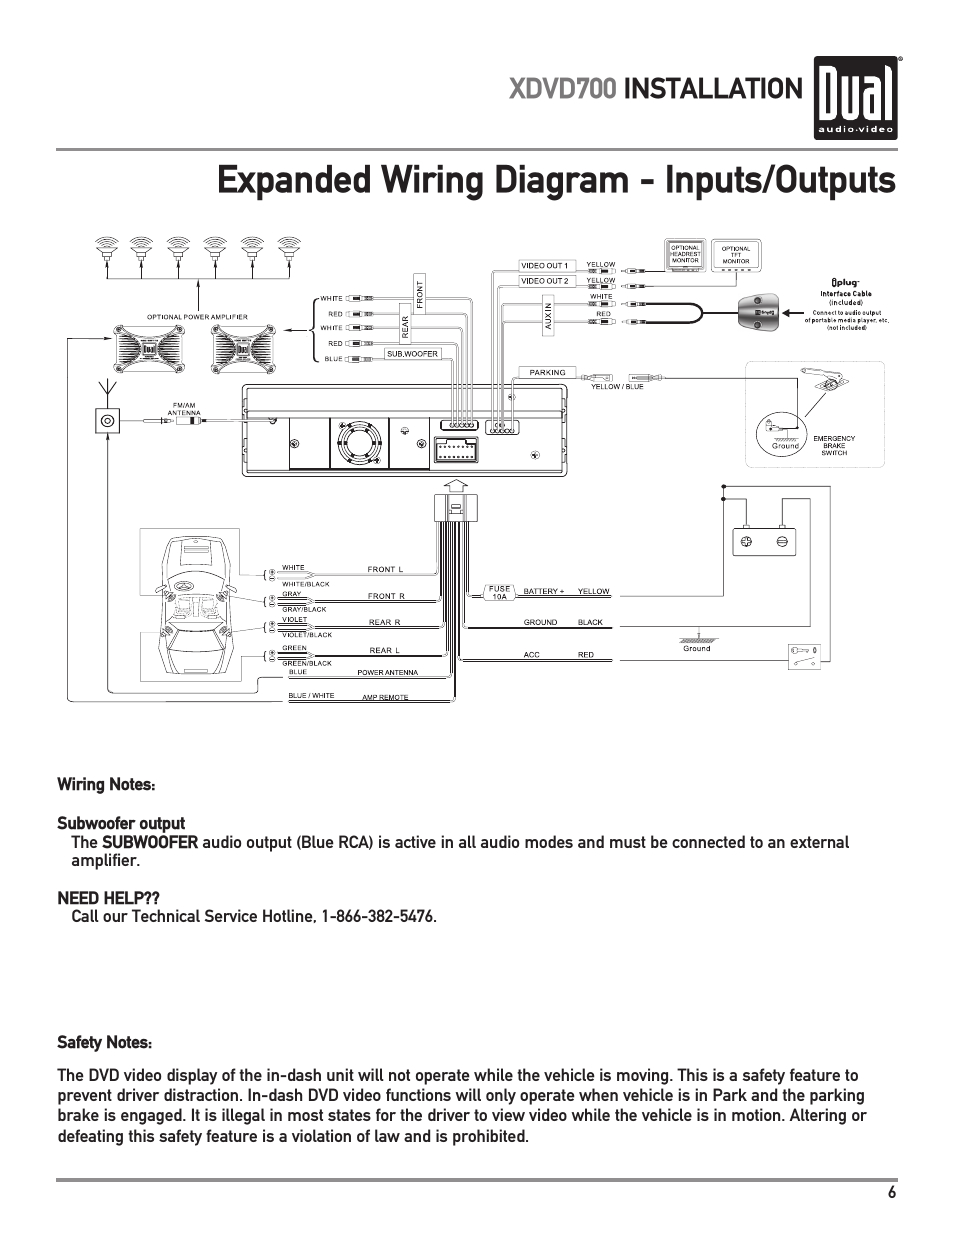 Dual Wiring Diagram - Most Searched Wiring Diagram Right Now • - Dual Xdm280Bt Wiring Diagram